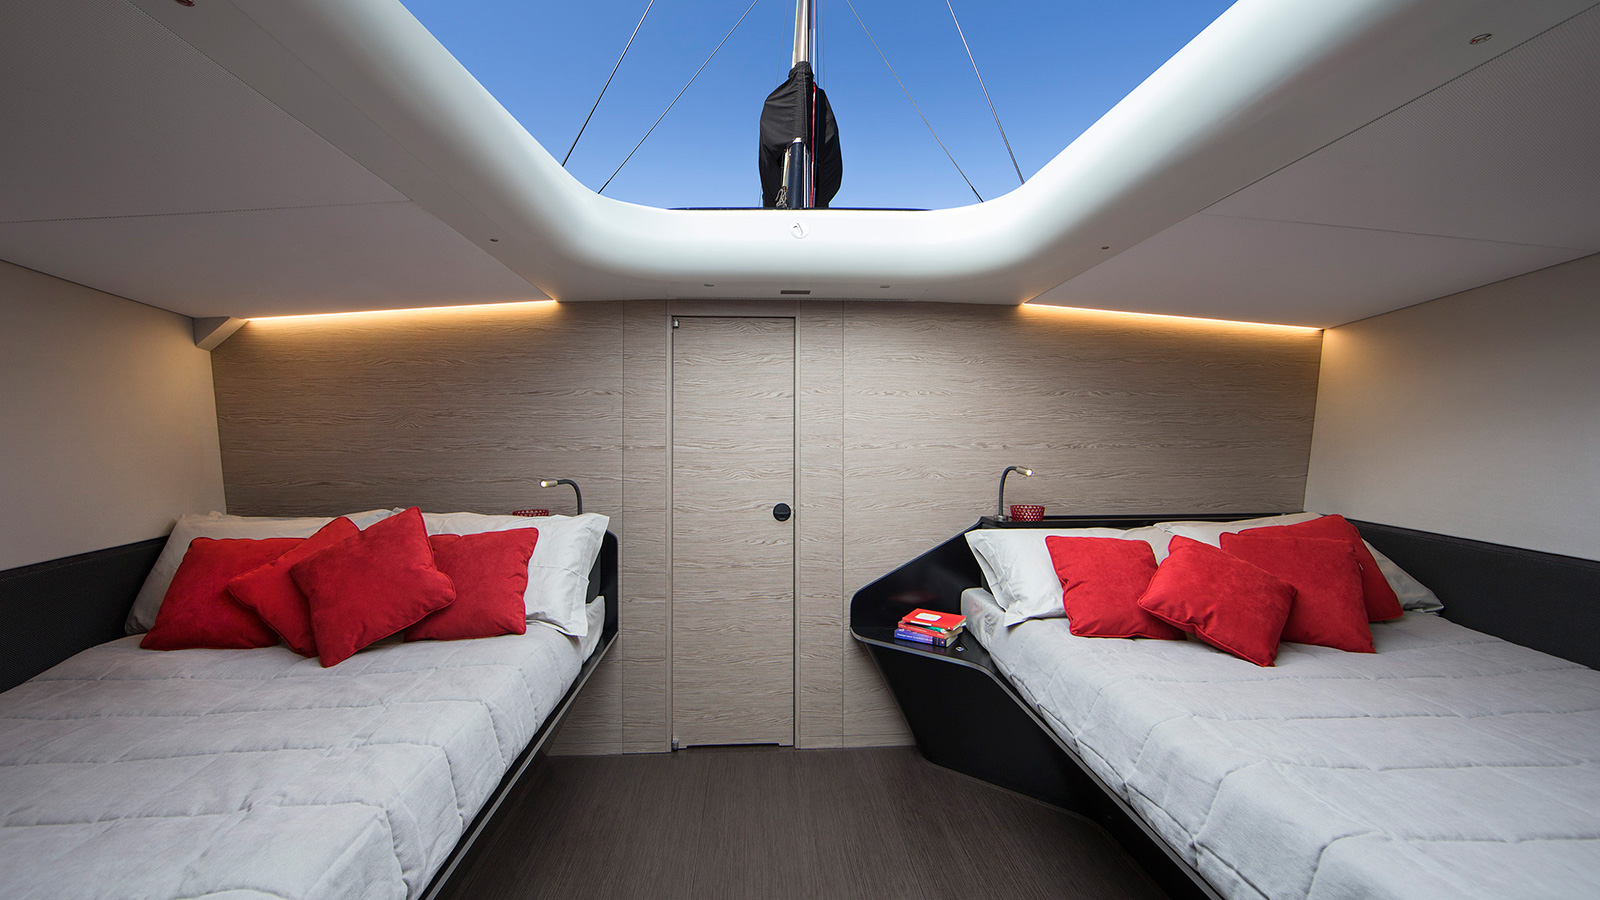 the-owners-cabin-of-the-wallycento-sailing-superyacht-tango-credit-Toni-Meneguzzo